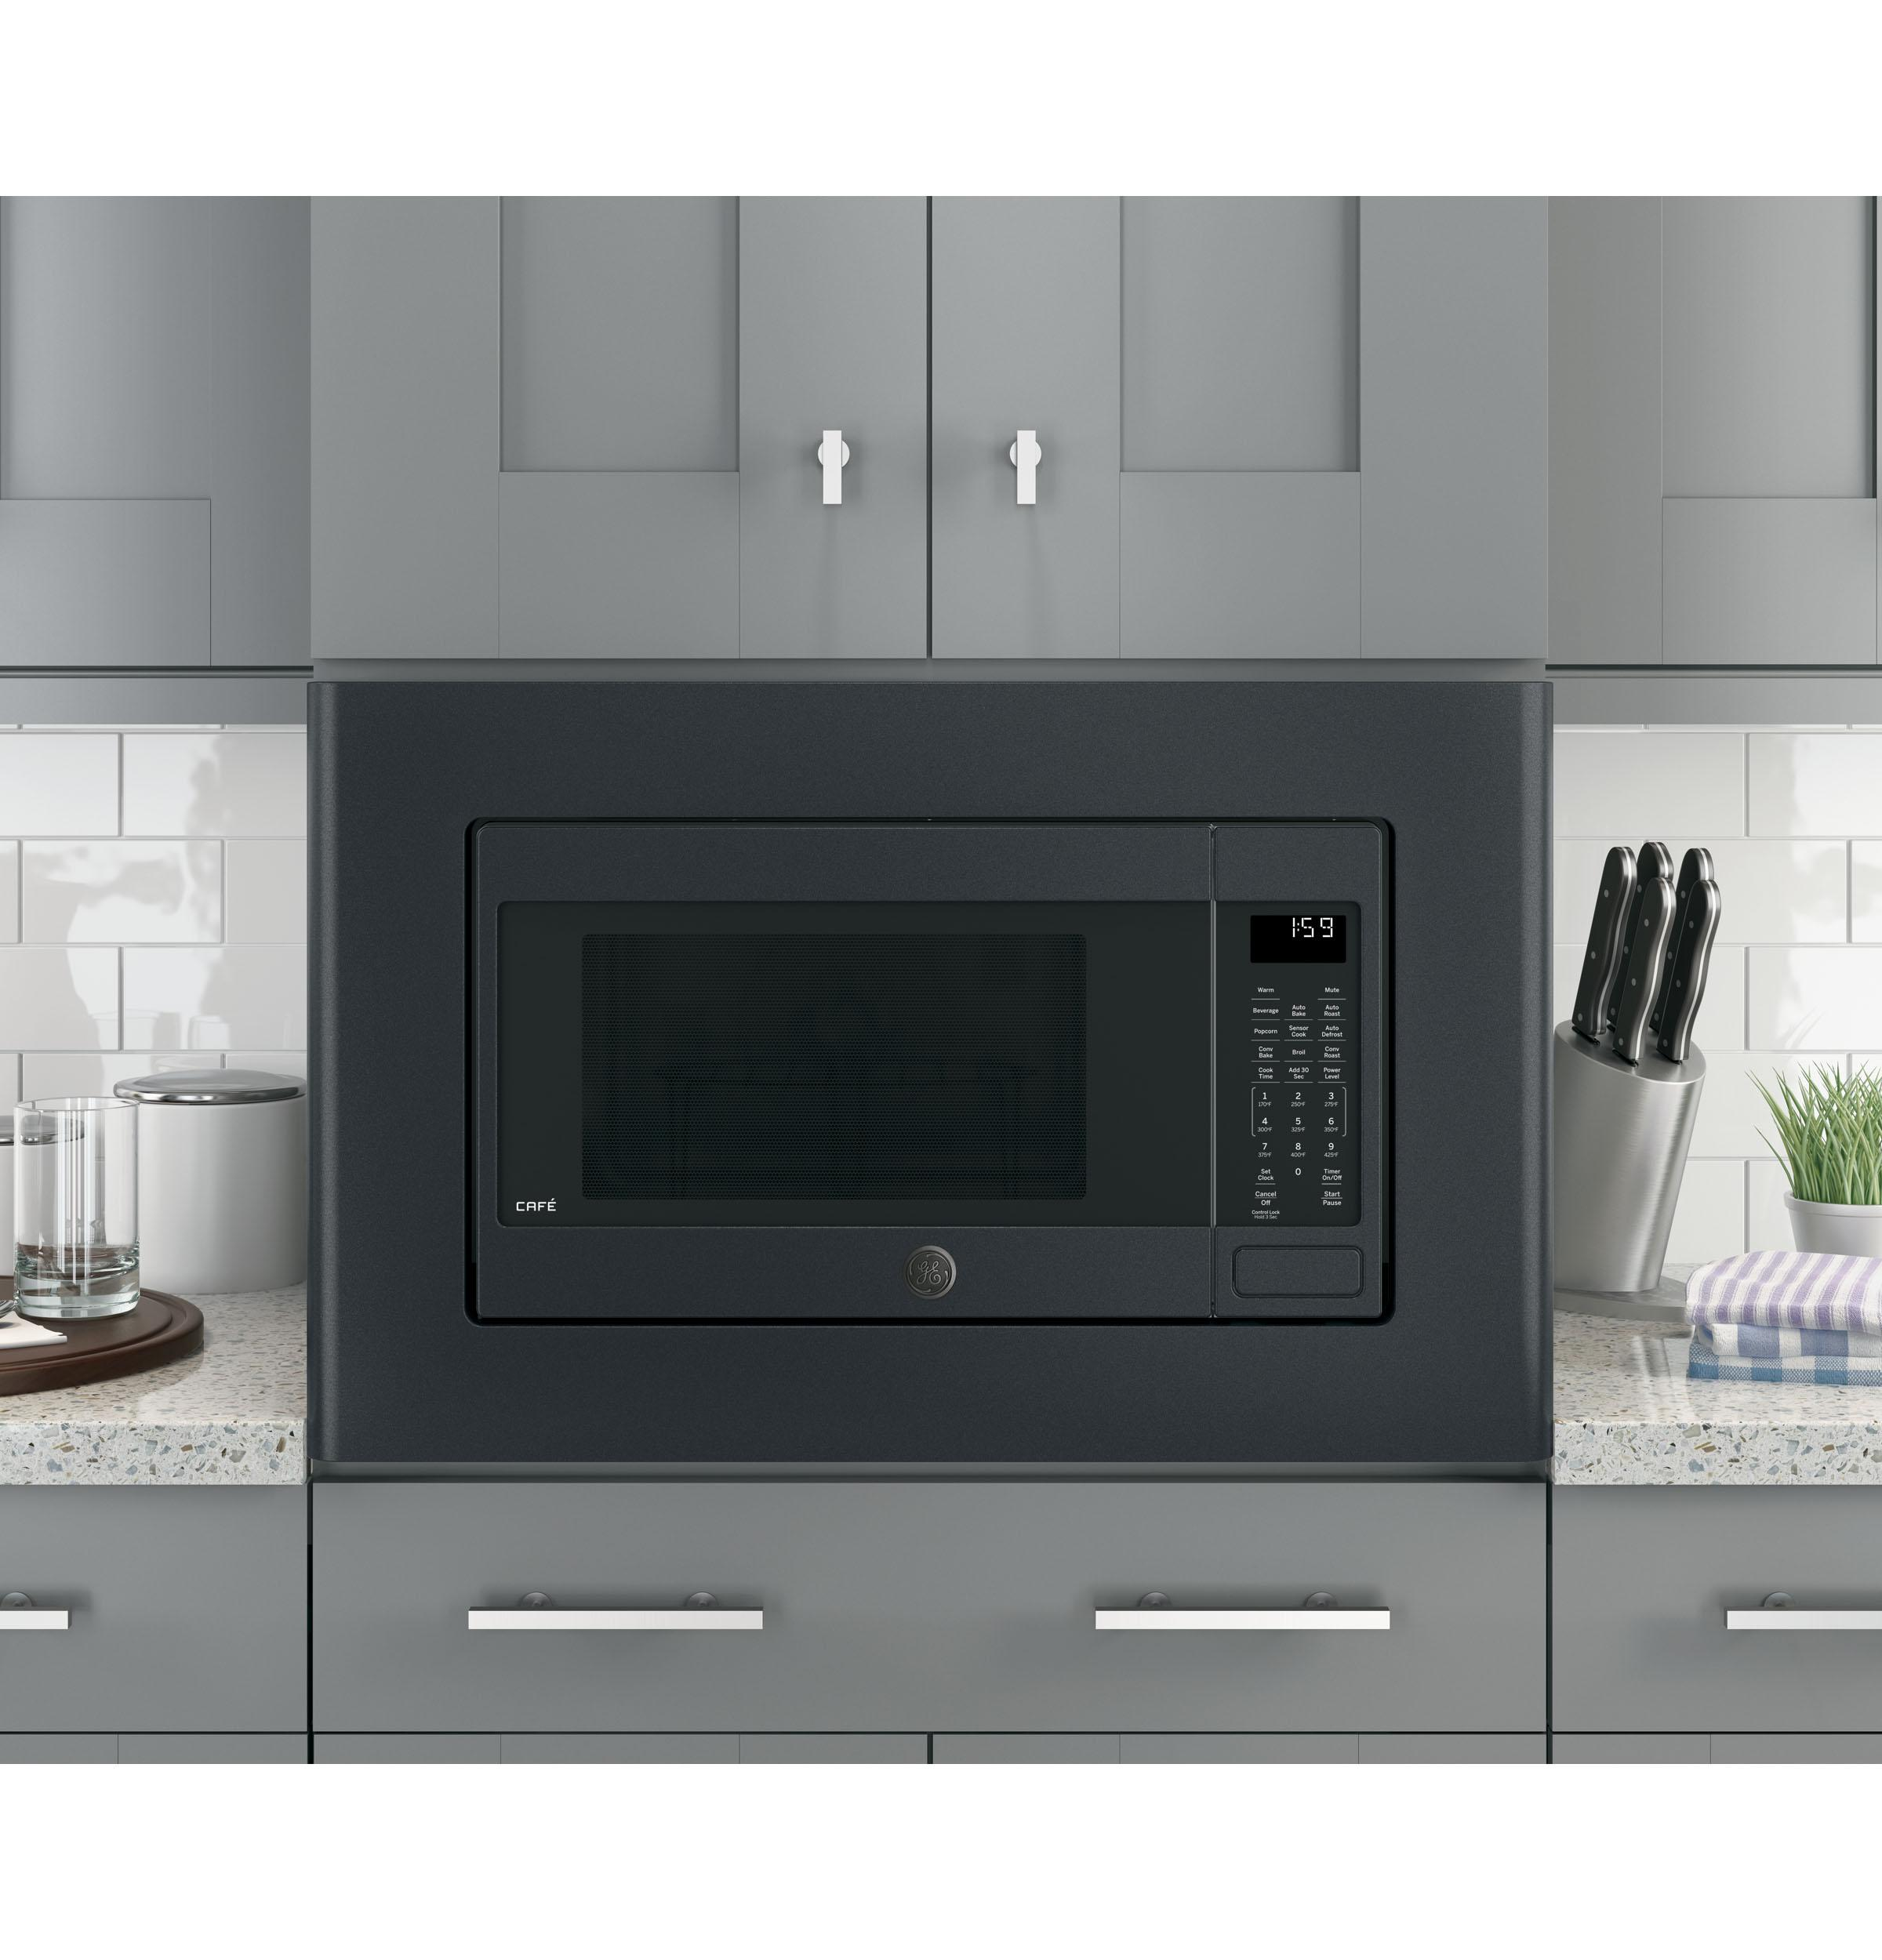 watts ge countertop microwave cafe and countertops cu ft convection with ovens oven